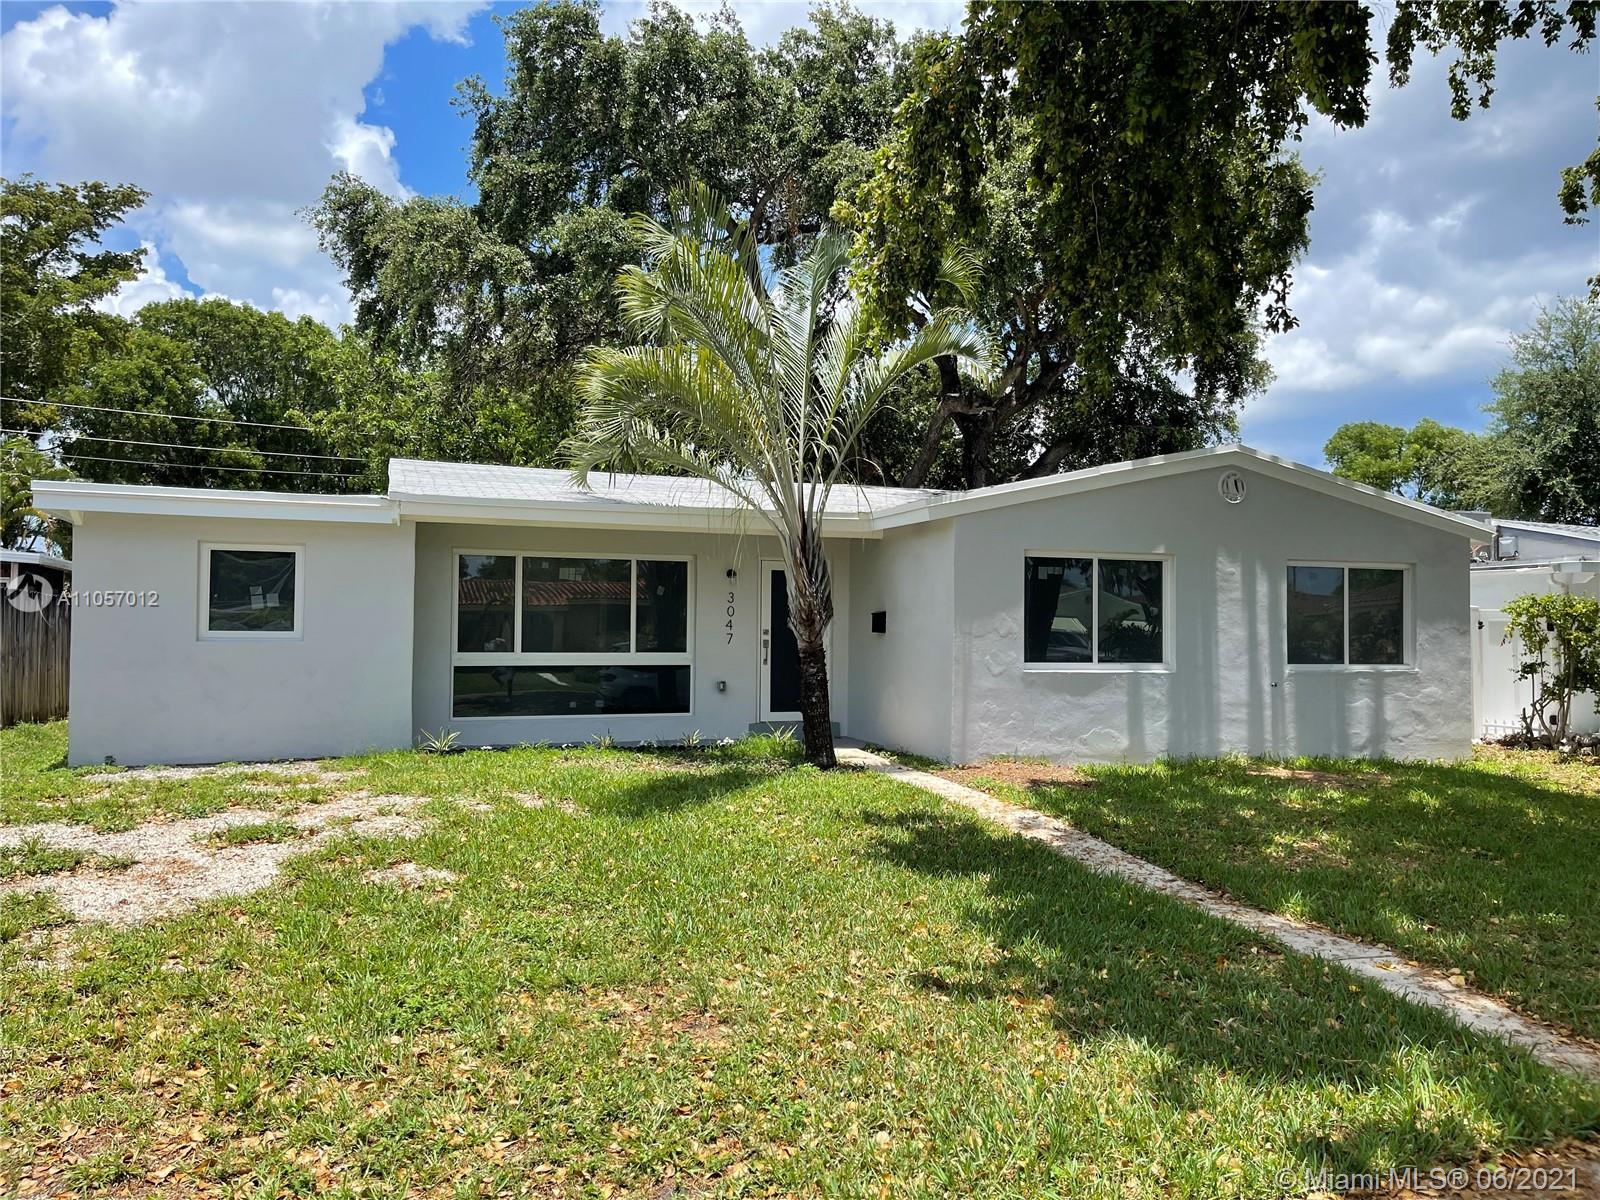 COMPLETELY REMODELED MOVE-IN READY! 4 BEDROOMS 3 BATHROOMS AND PLENTY OF ROOM FOR A POOL! THIS HOME